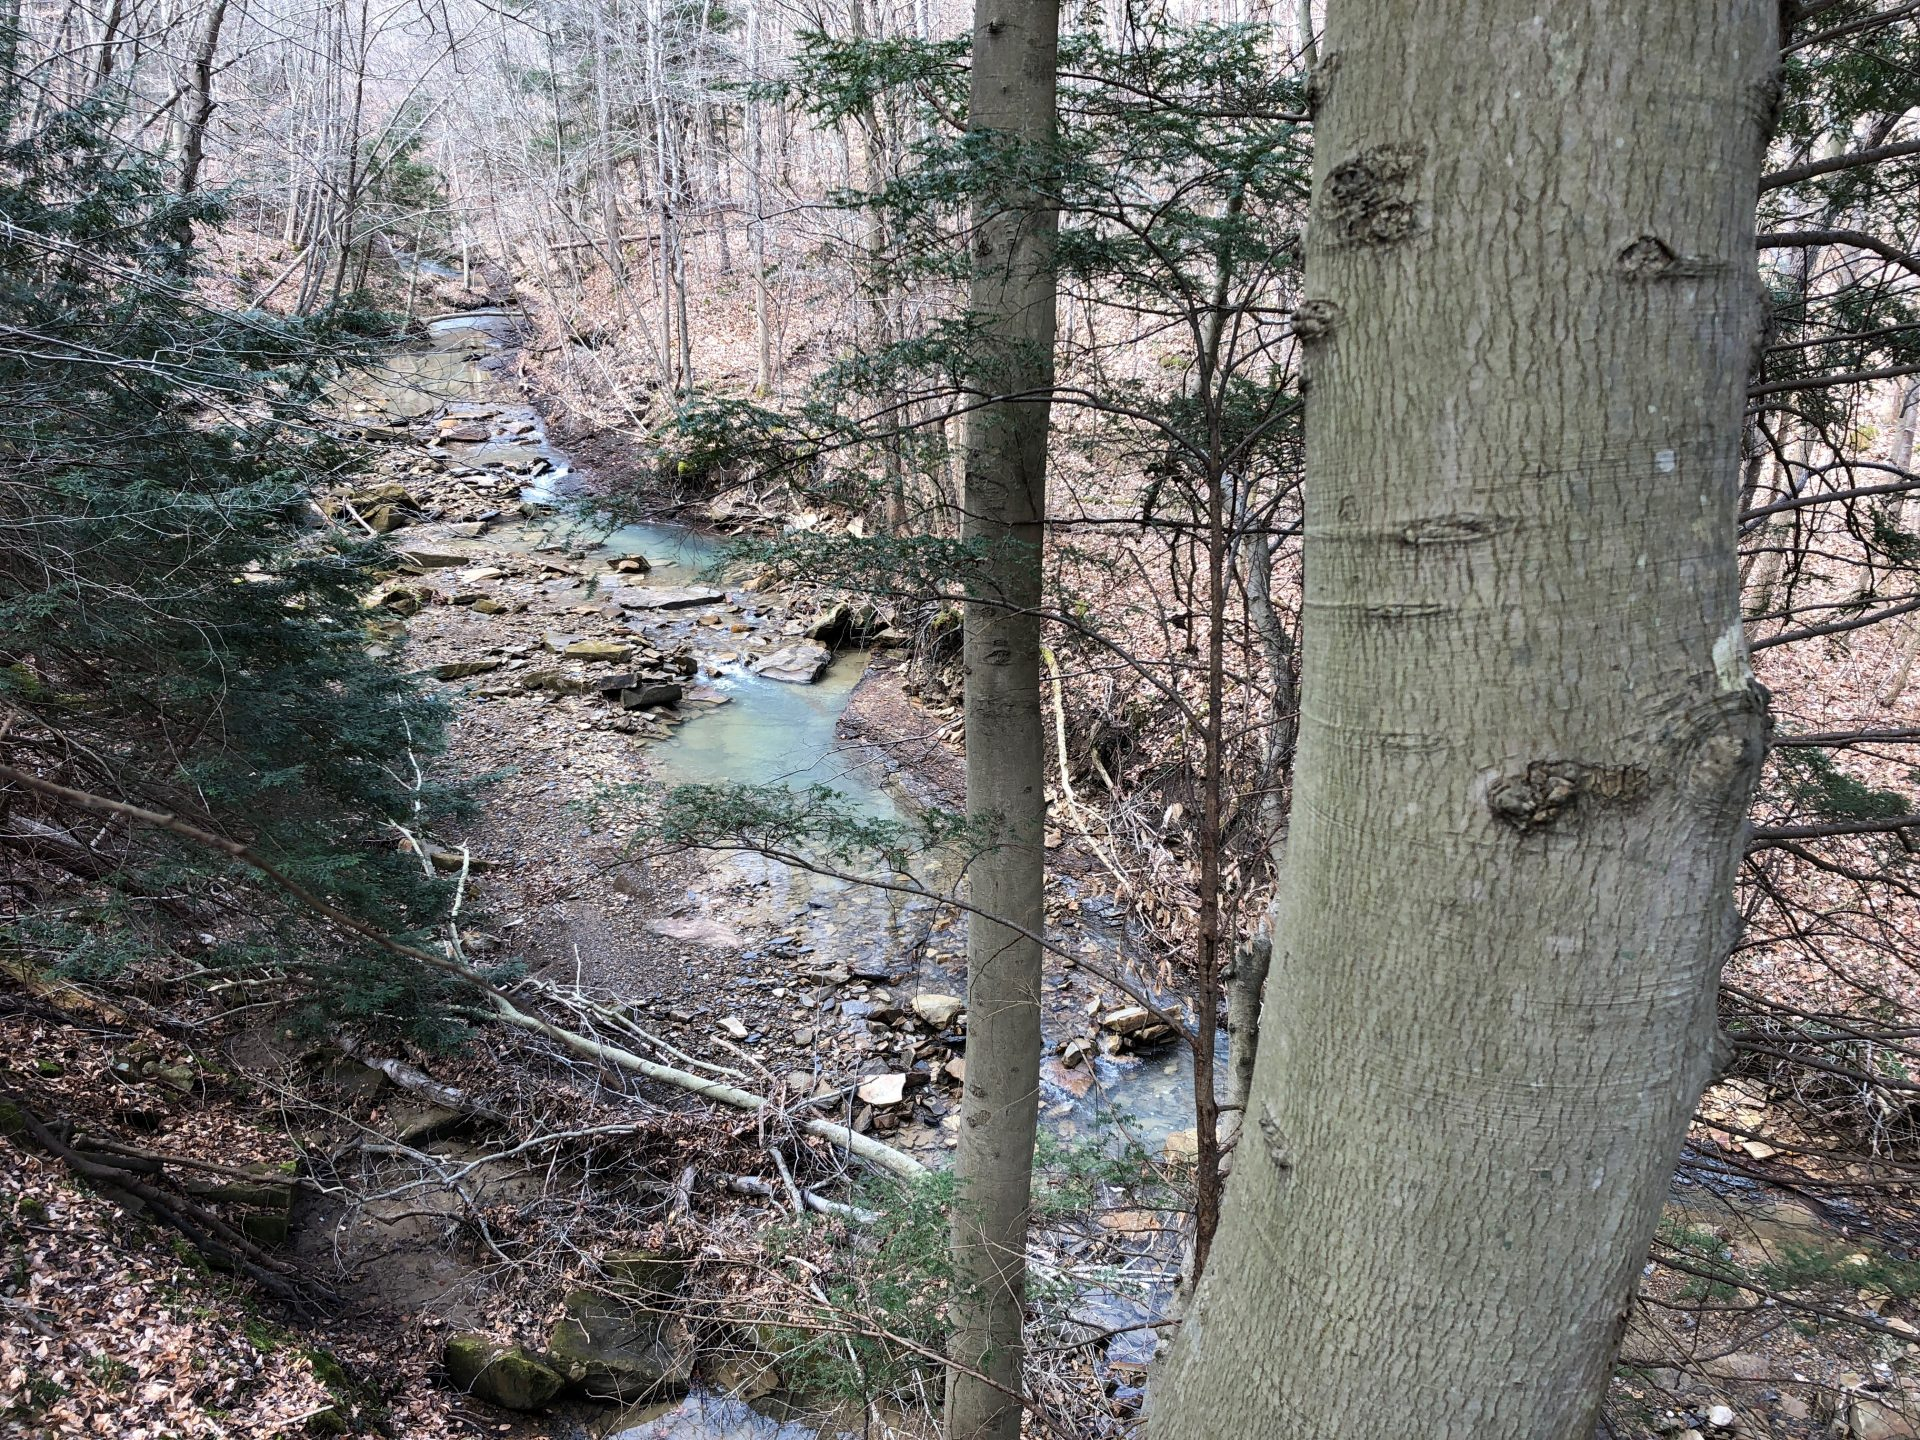 A view of Rock Run